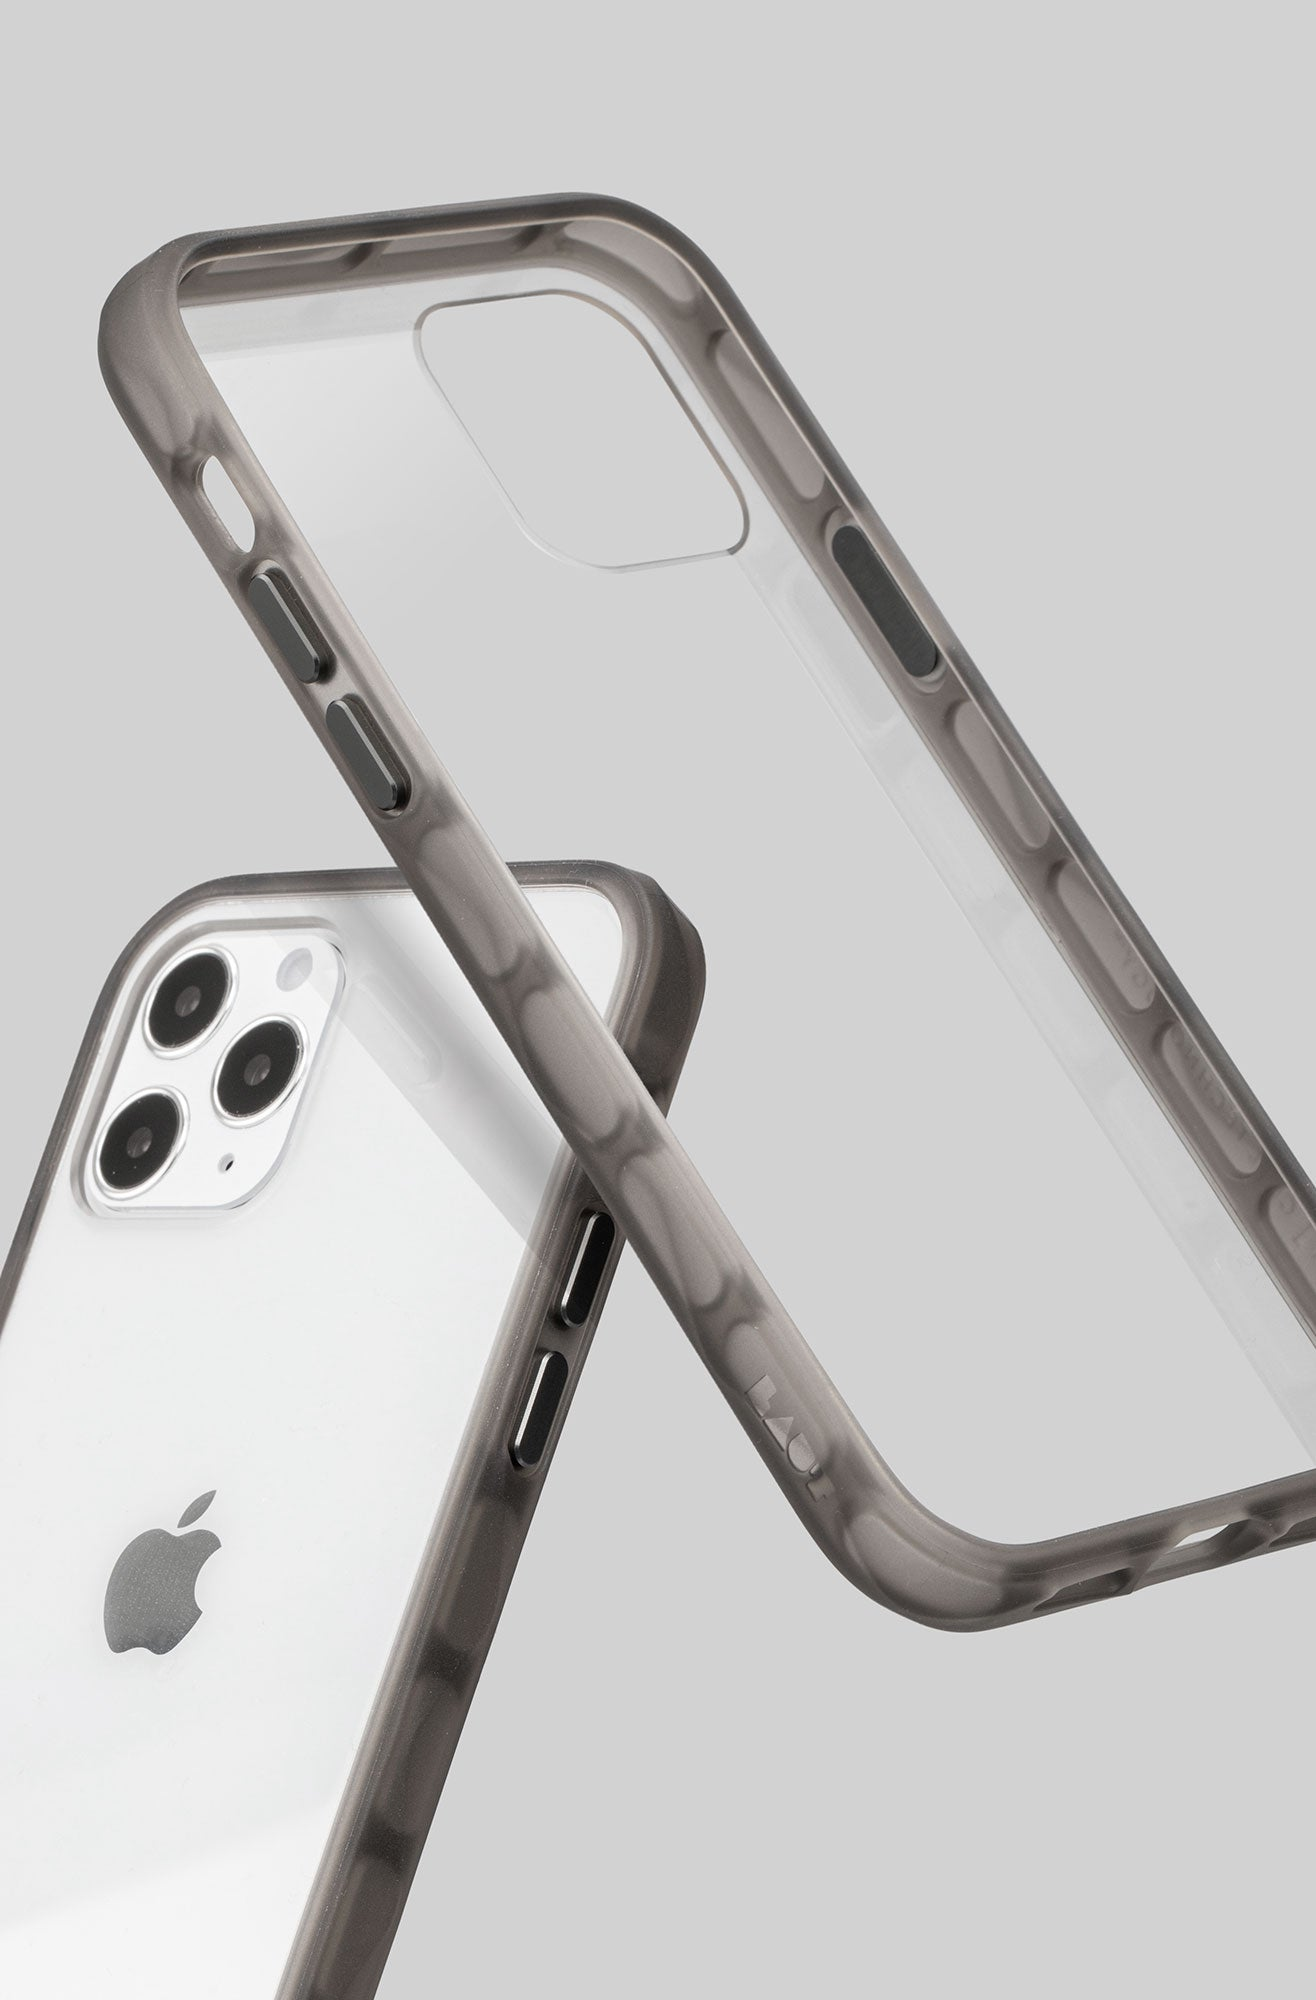 LAUT - CRYSTAL MATTER (IMPKT) - TINTED SERIES case for iPhone 12 series - IMPKT CELL TECHNOLOGY™